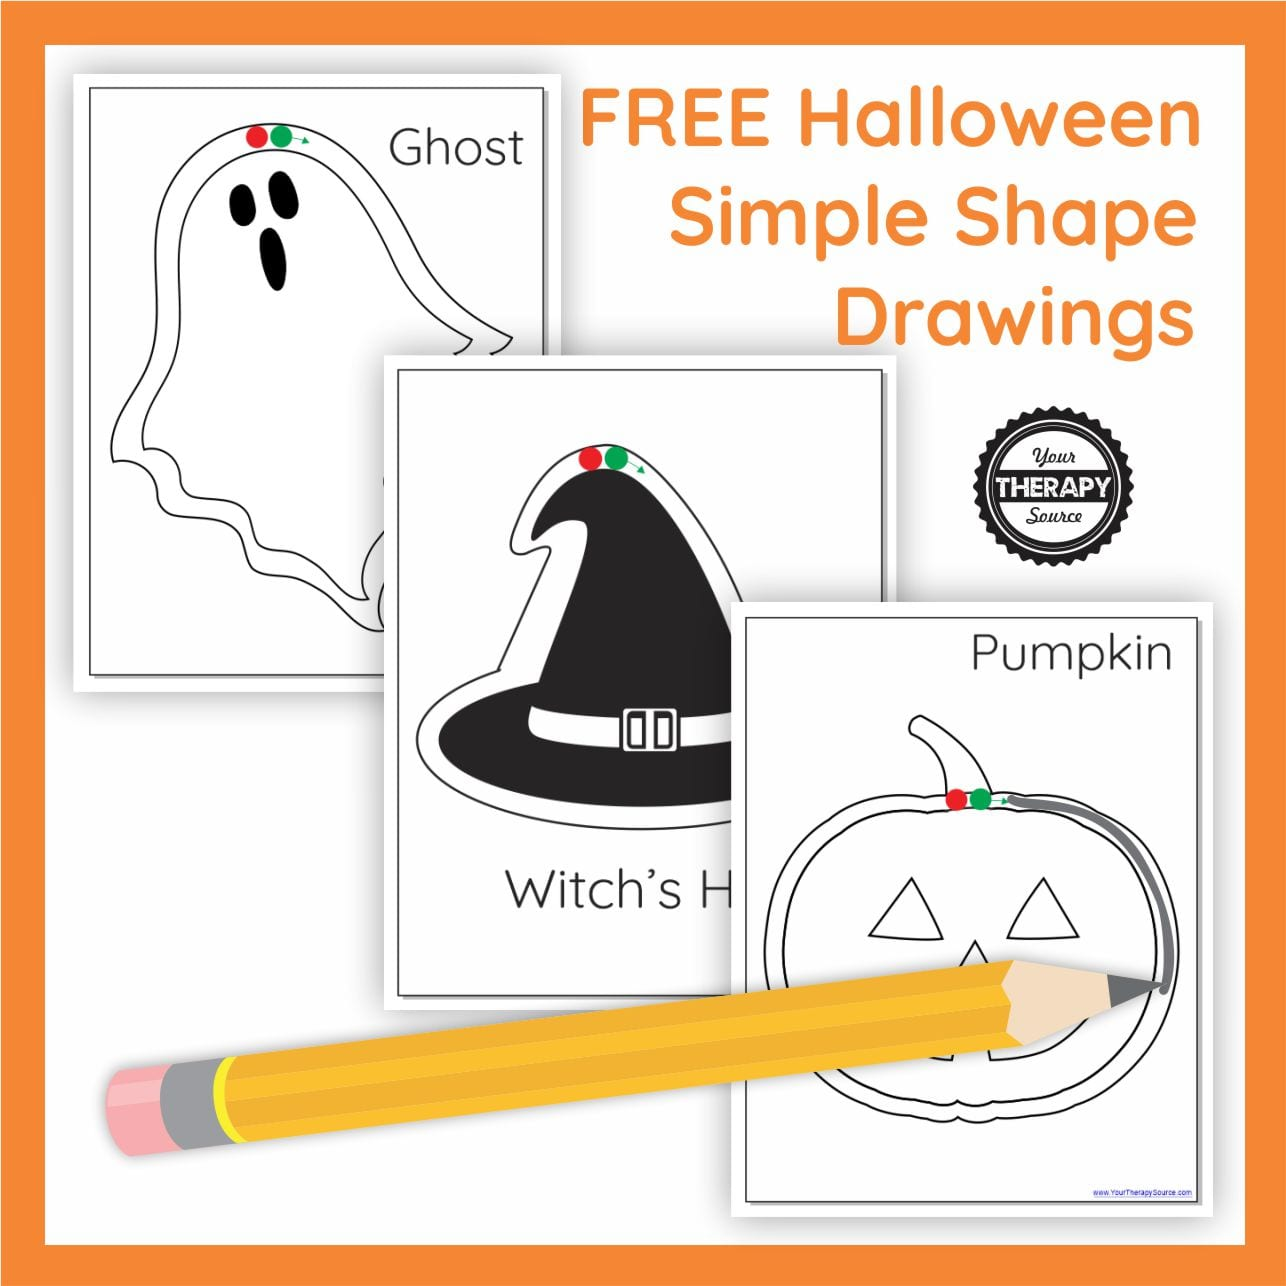 Halloween Simple Shape Drawings Free